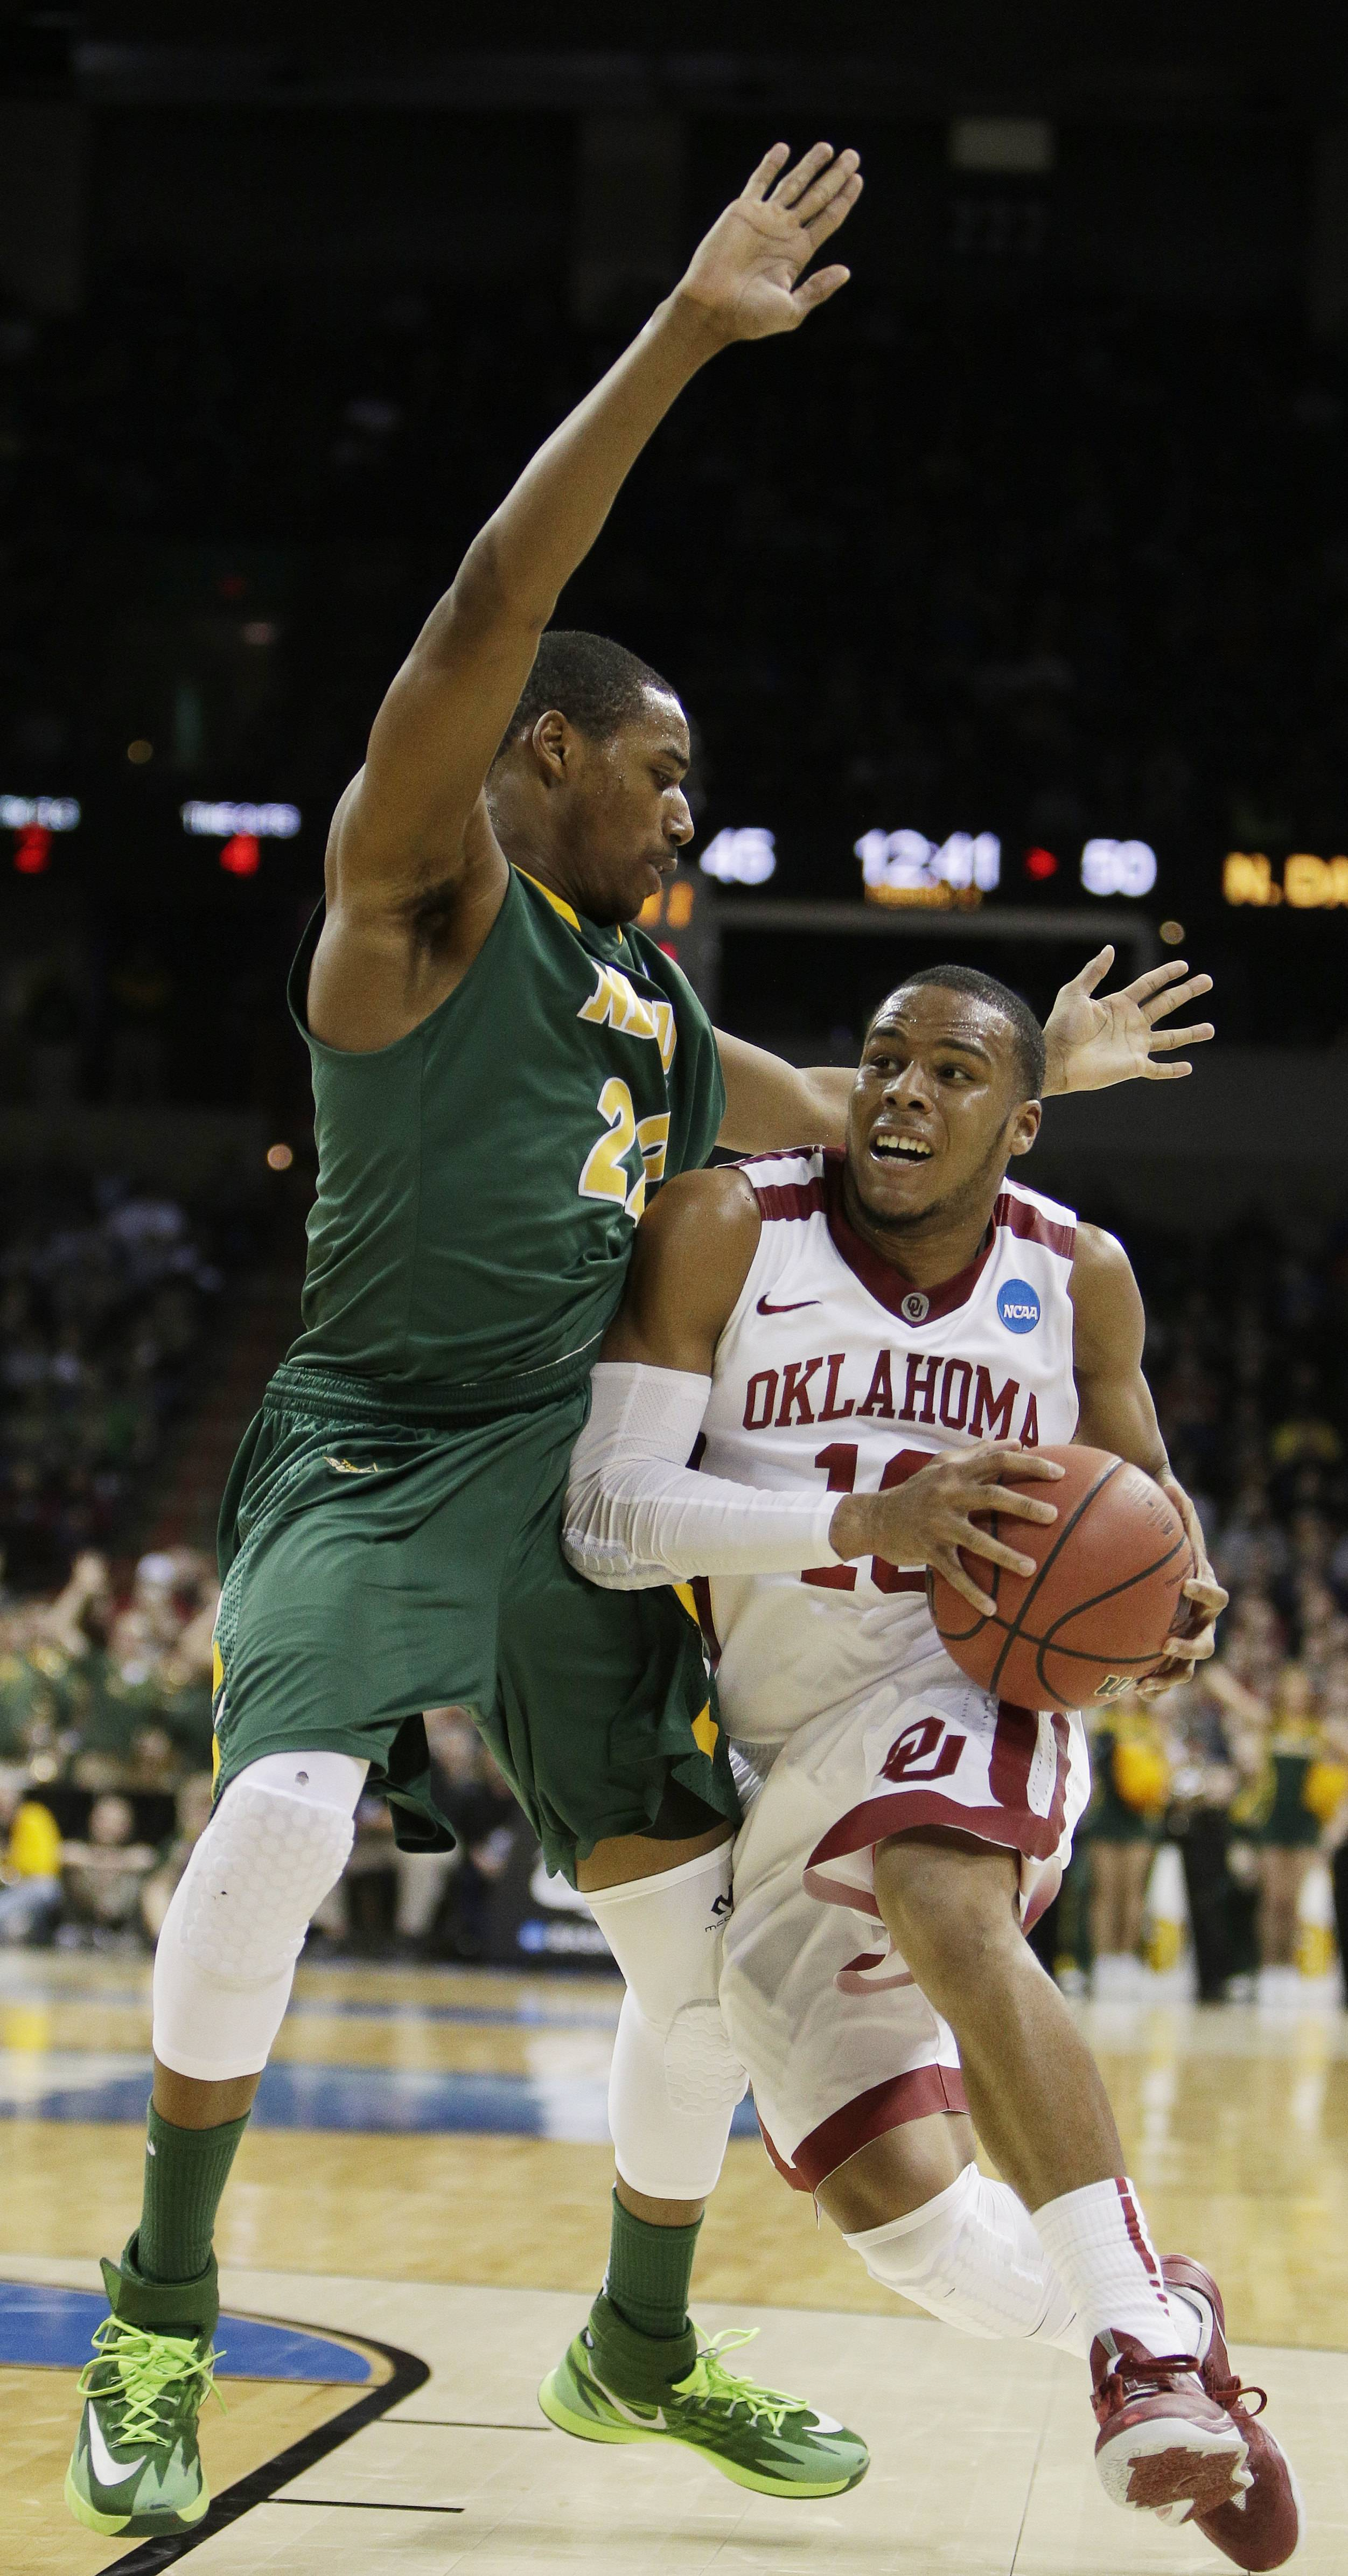 Oklahoma's Jordan Woodard (10) drives against North Dakota State's Kory Brown (22), an Elgin High graduate, in the second half of a second-round game of the NCAA Tournament in Spokane, Wash., last week.